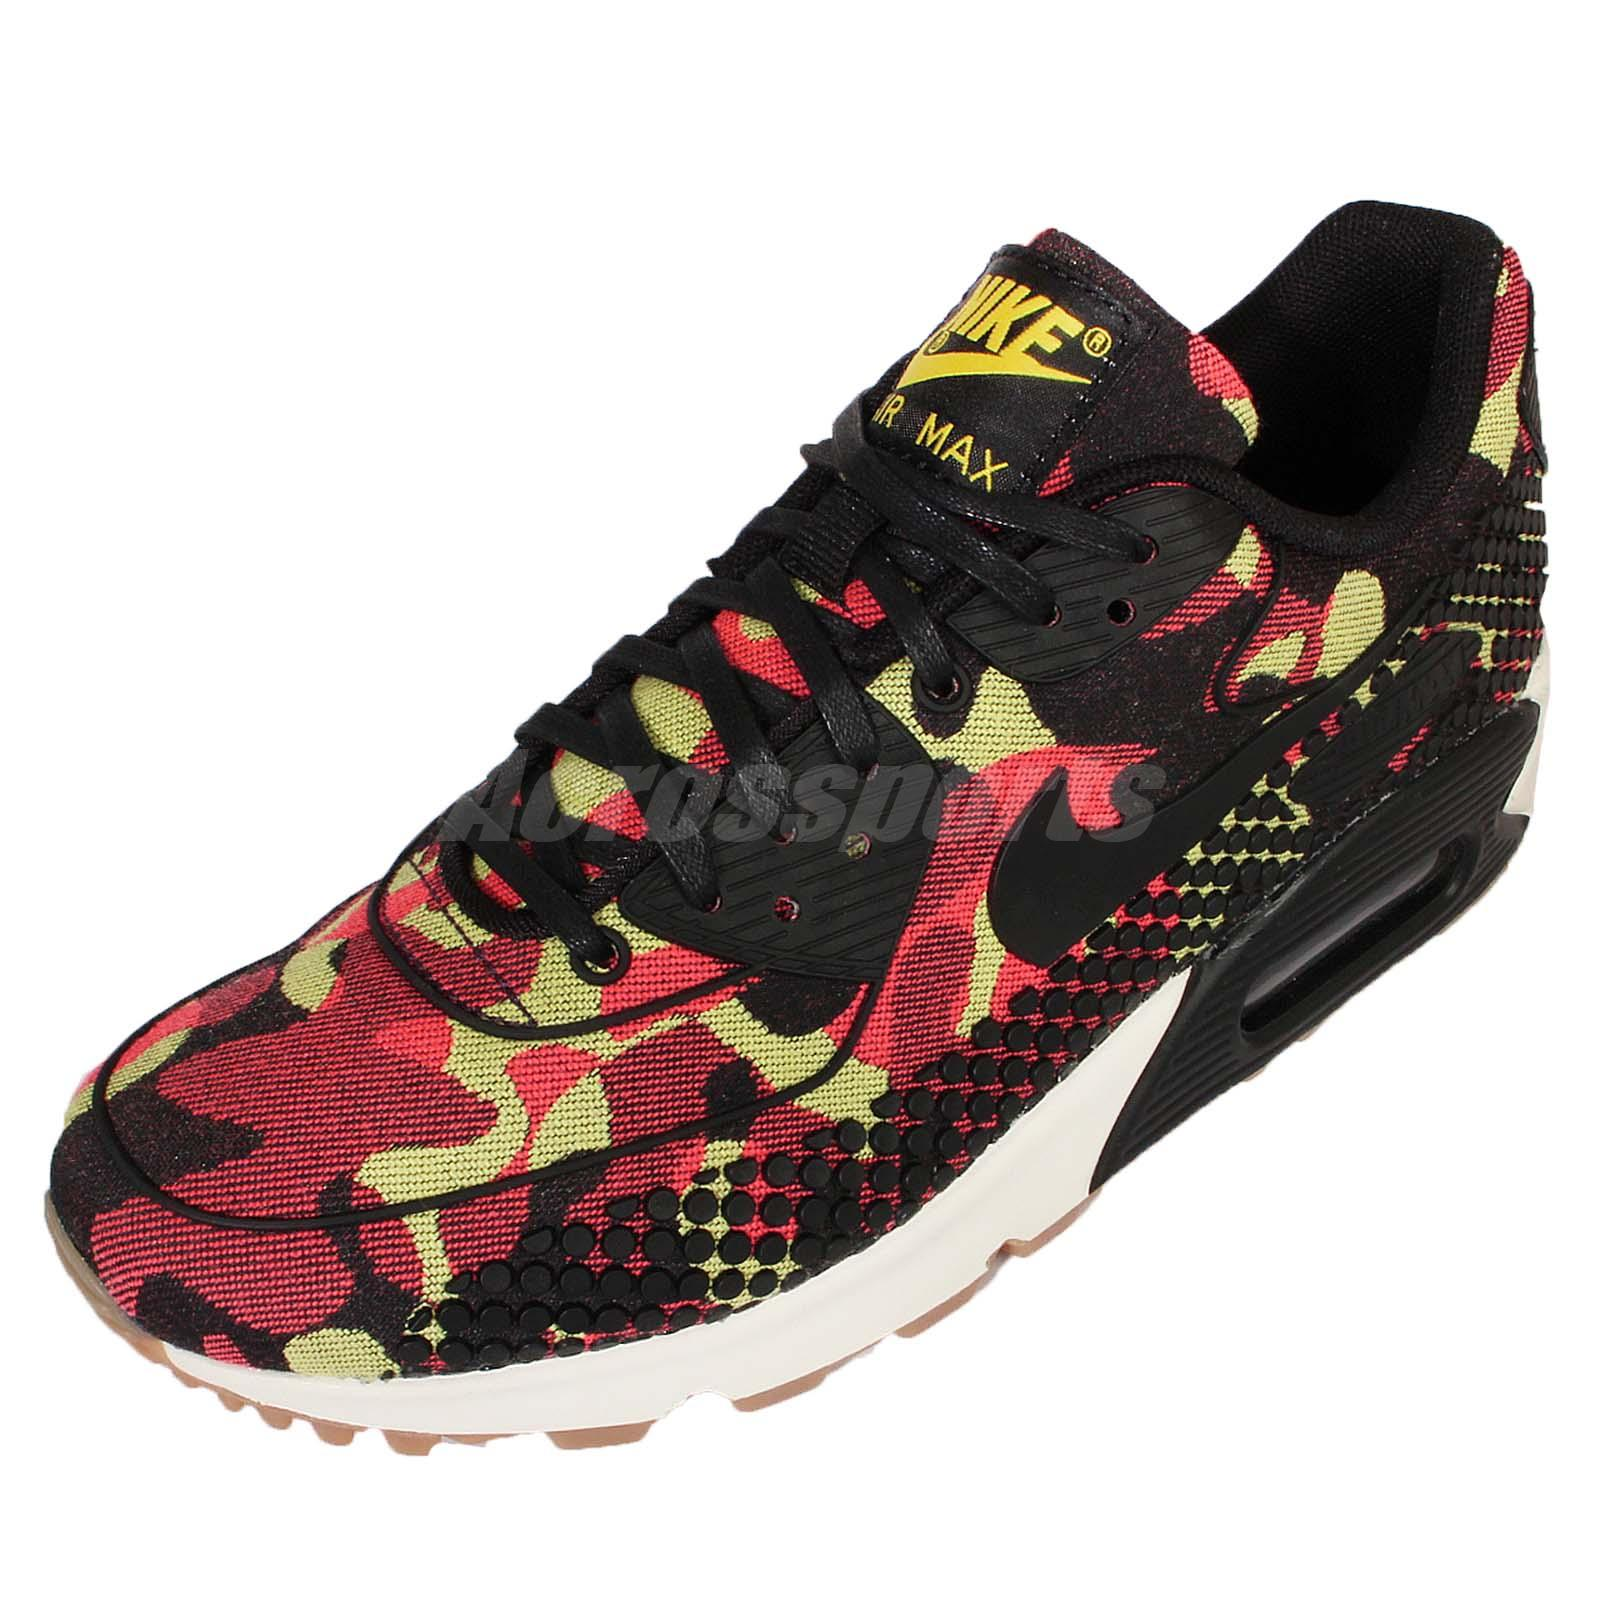 Wmns Nike Air Max 90 JCRD Premium Womens Running Shoes NSW Sneakers Pick 1 | eBay